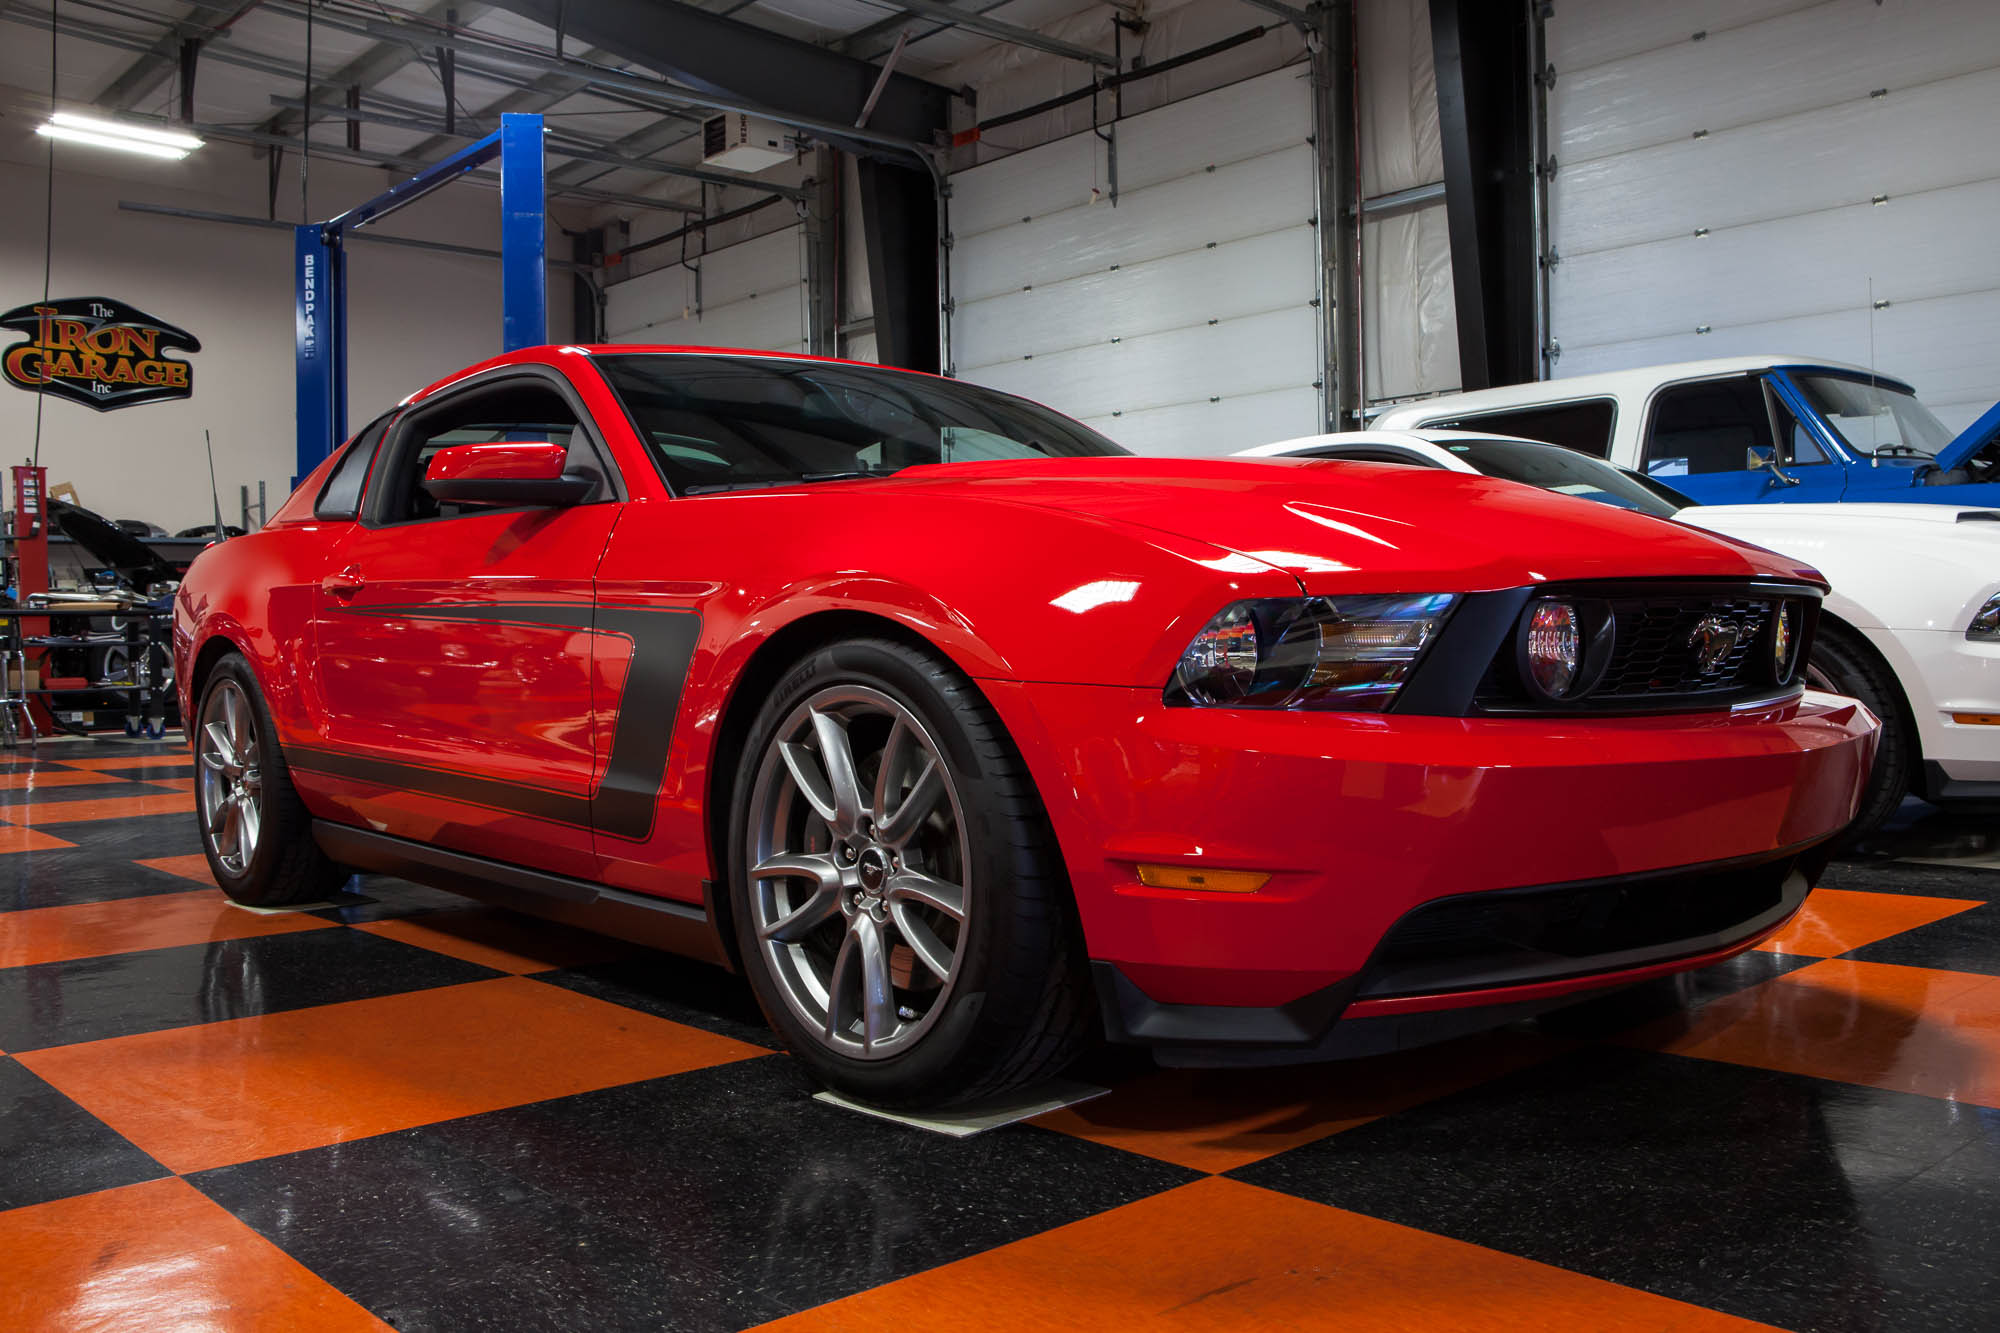 2012 Mustang For Sale >> 2012 Mustang GT - Sold - The Iron Garage